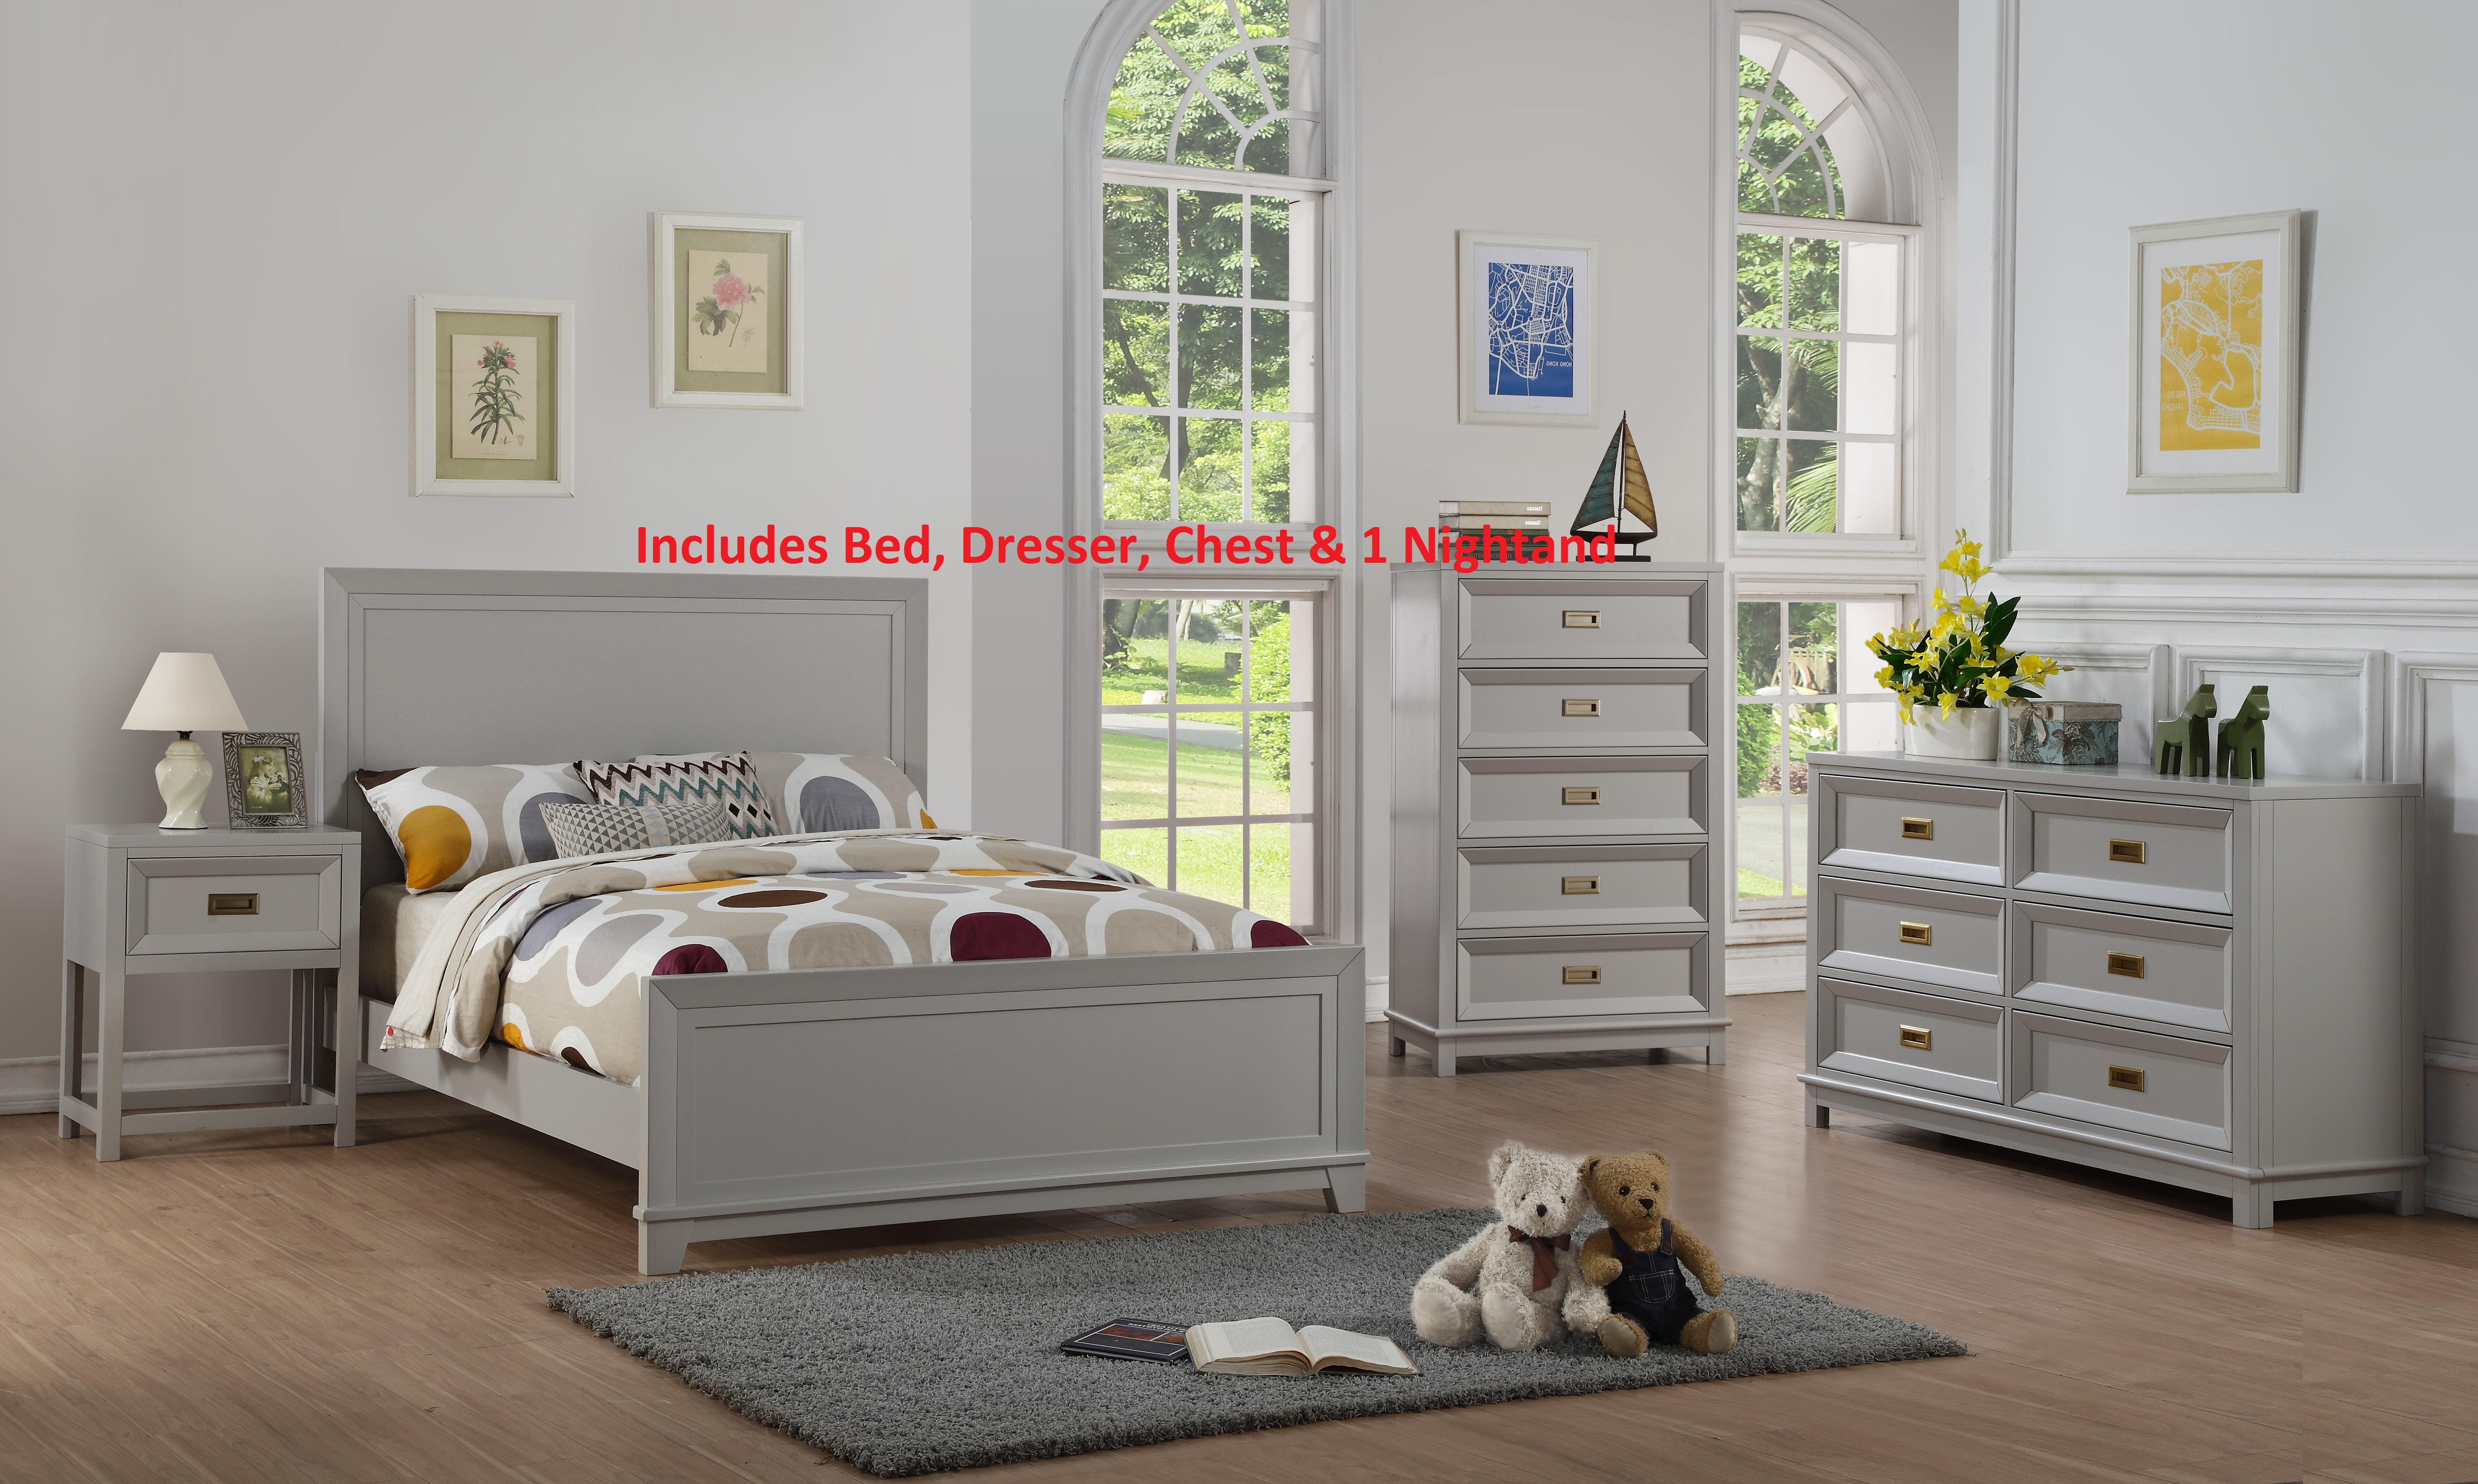 Product Image Victoria 4 Piece Twin Size Gray Wood Contemporary Kids  Bedroom Set (Panel Bed, Dresser